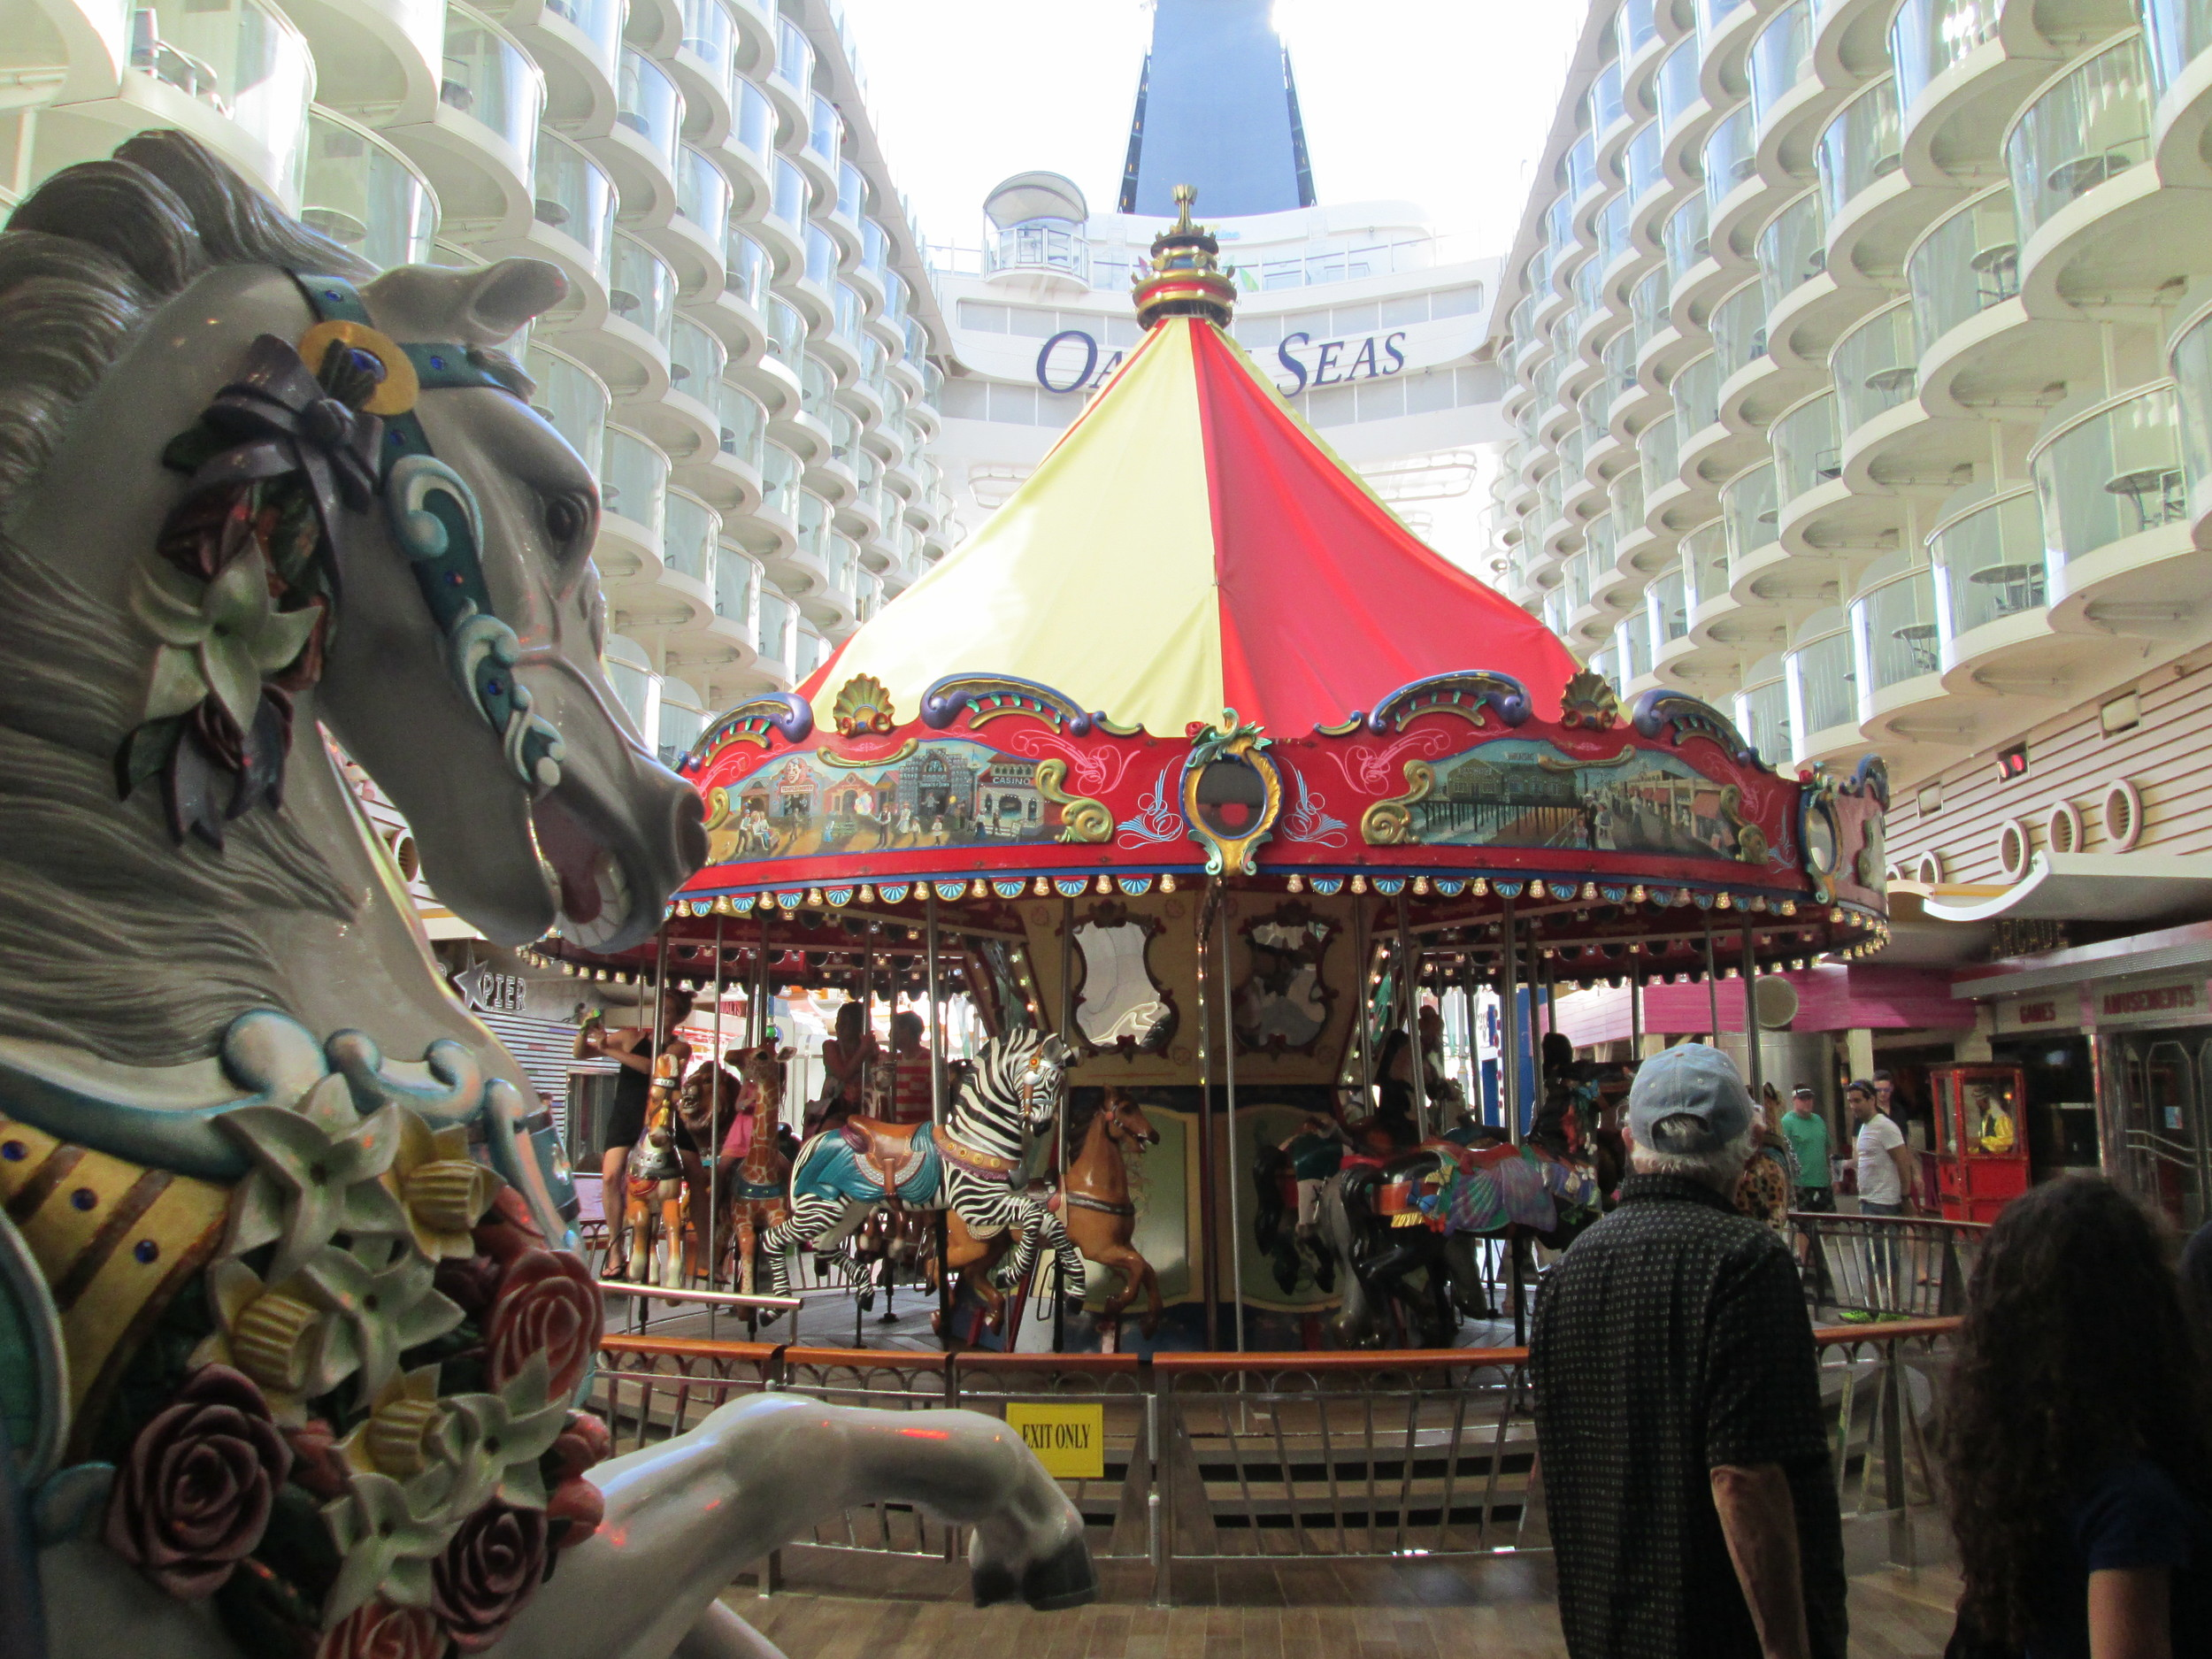 The Boardwalk is a great area that boasts a carousel, rock-climbing wall, ice cream shop and aqua-theater.